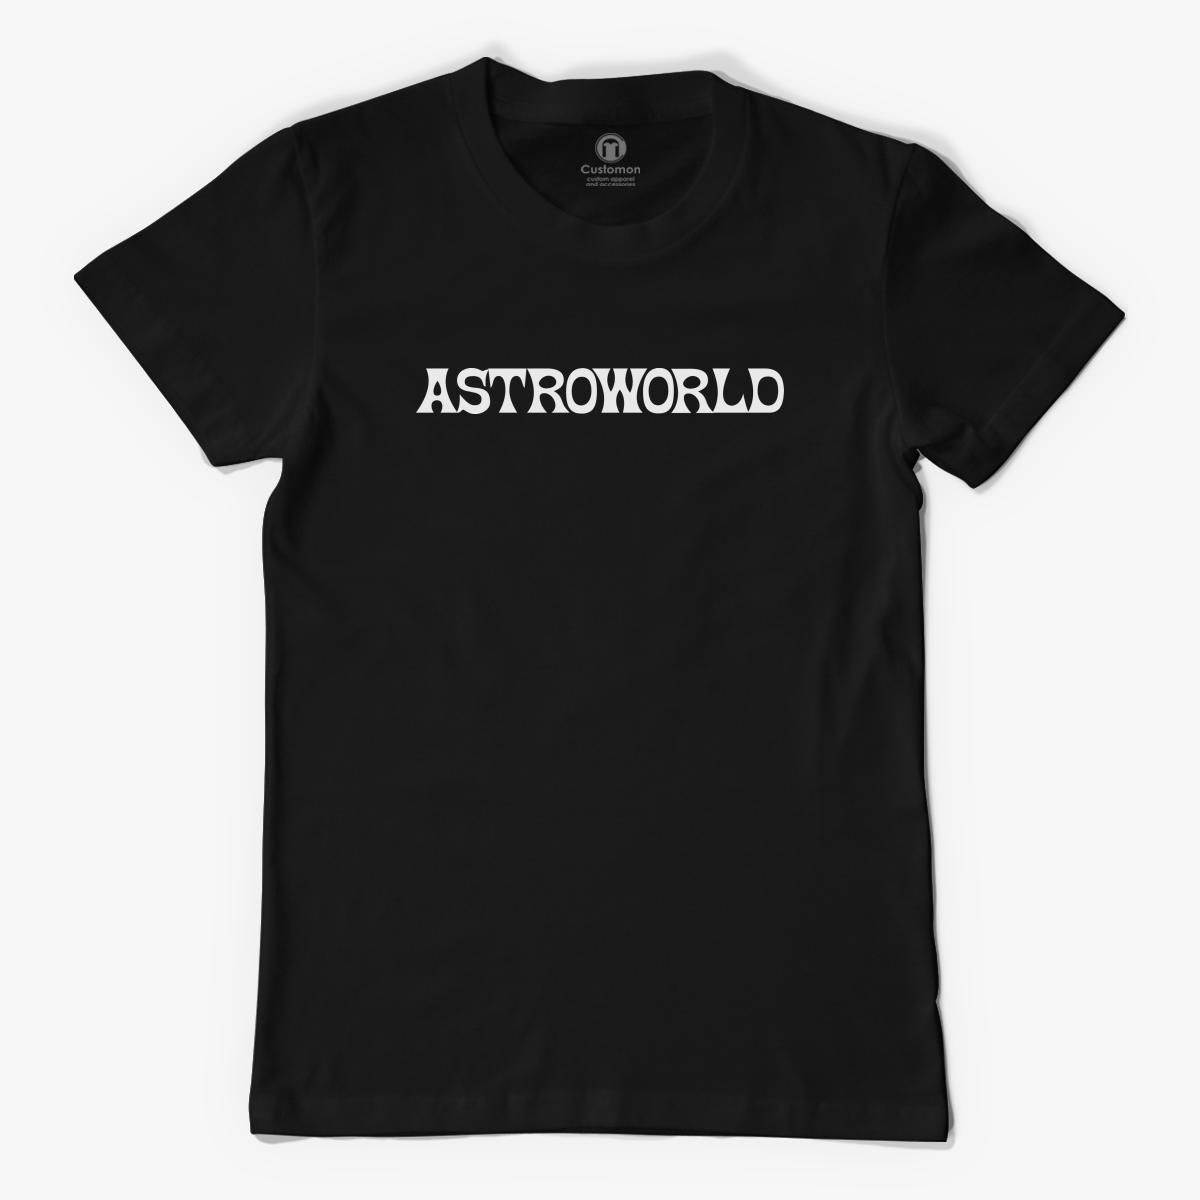 cfbefda5 AstroWorld Logo Men's T-shirt - Customon